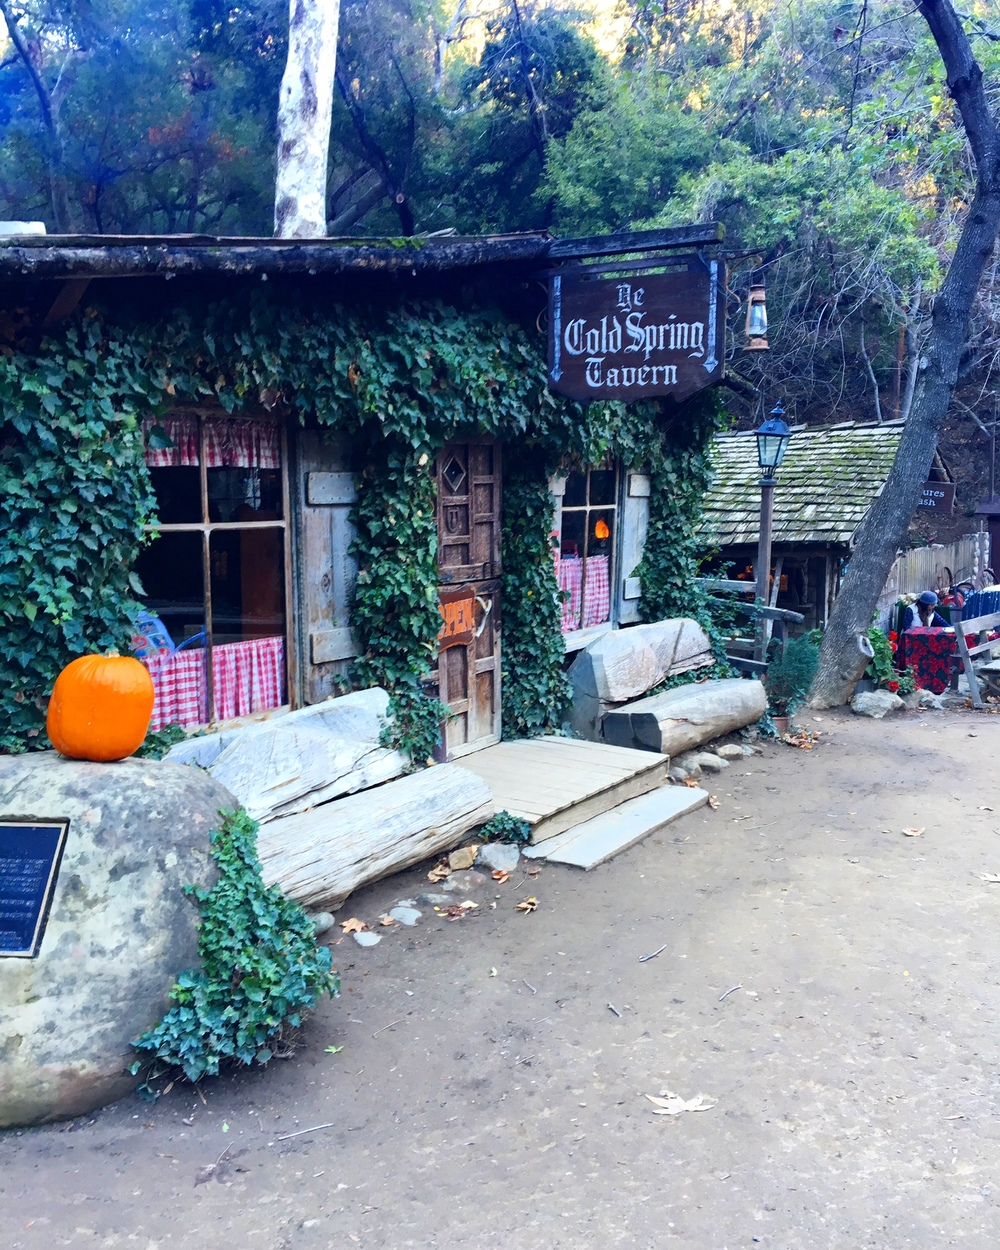 Cold Spring Tavern has been on our bucket list for quite some time. Nestled in the Santa Barbara mountains, you'll find killer tri-tip sandwiches, live music and great beer.